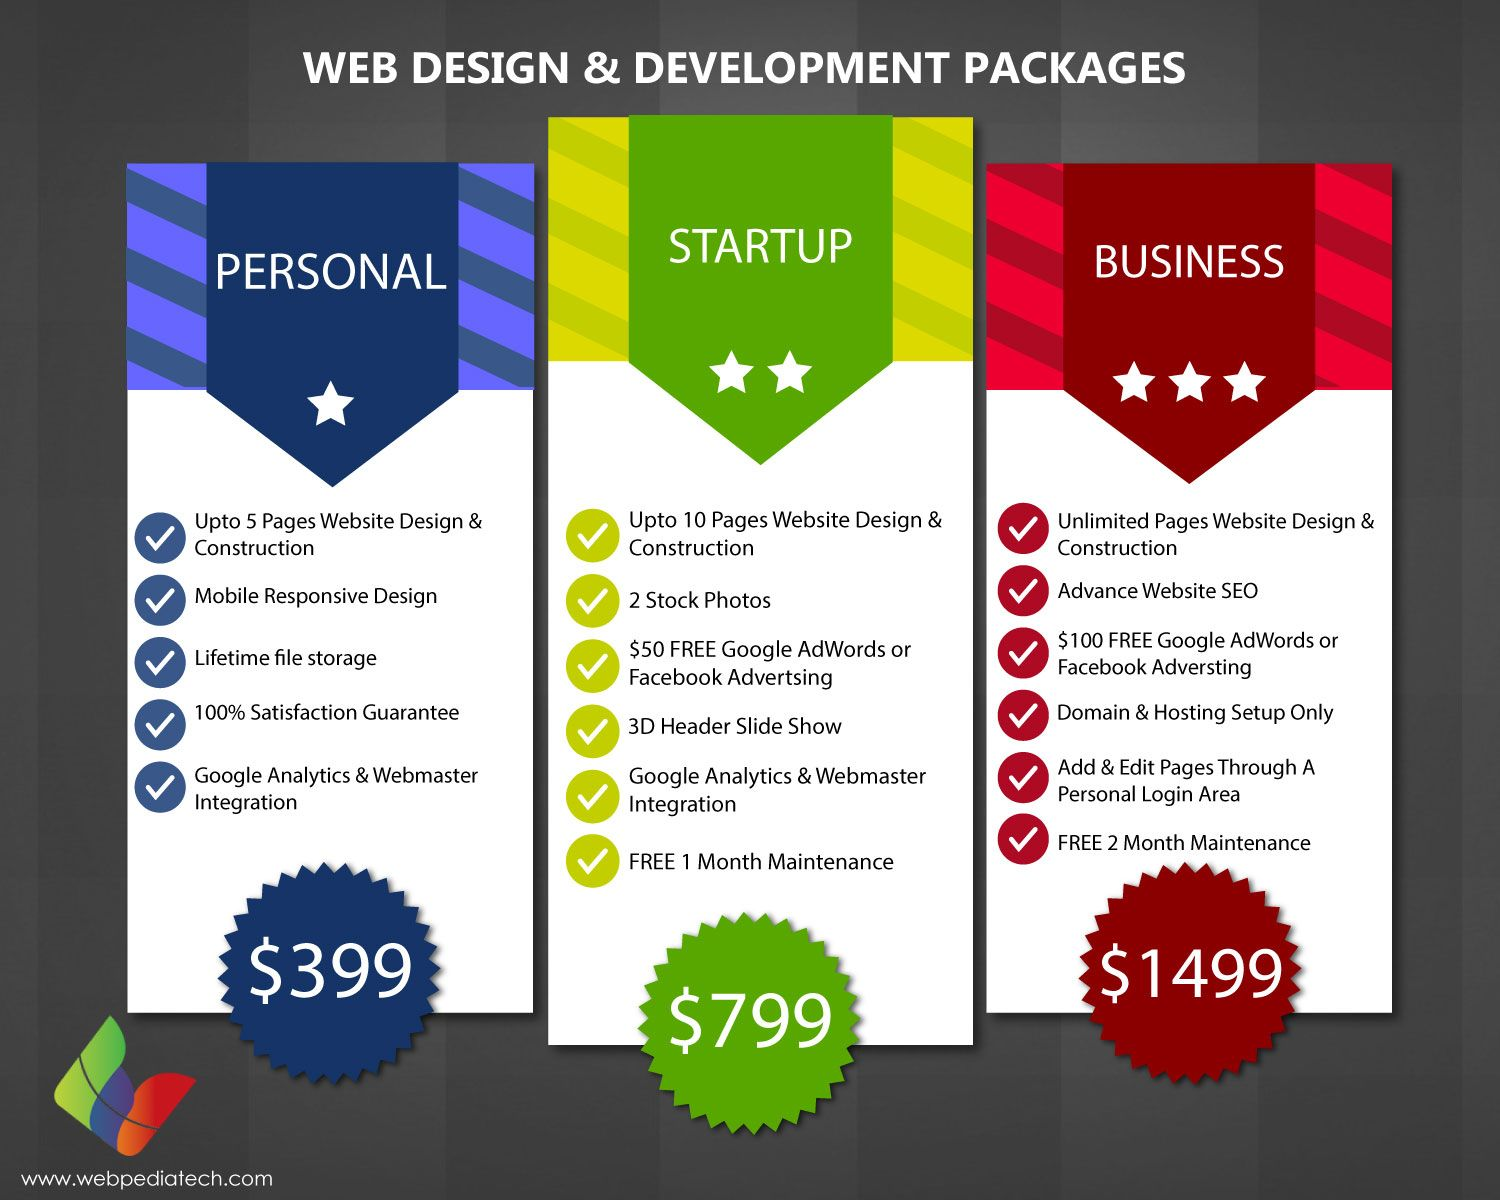 Our Web Design Online Packages For Web Development Consists Of Many Different Solutions Fulfilling Diverse Online Web Design Web Development Design Web Design